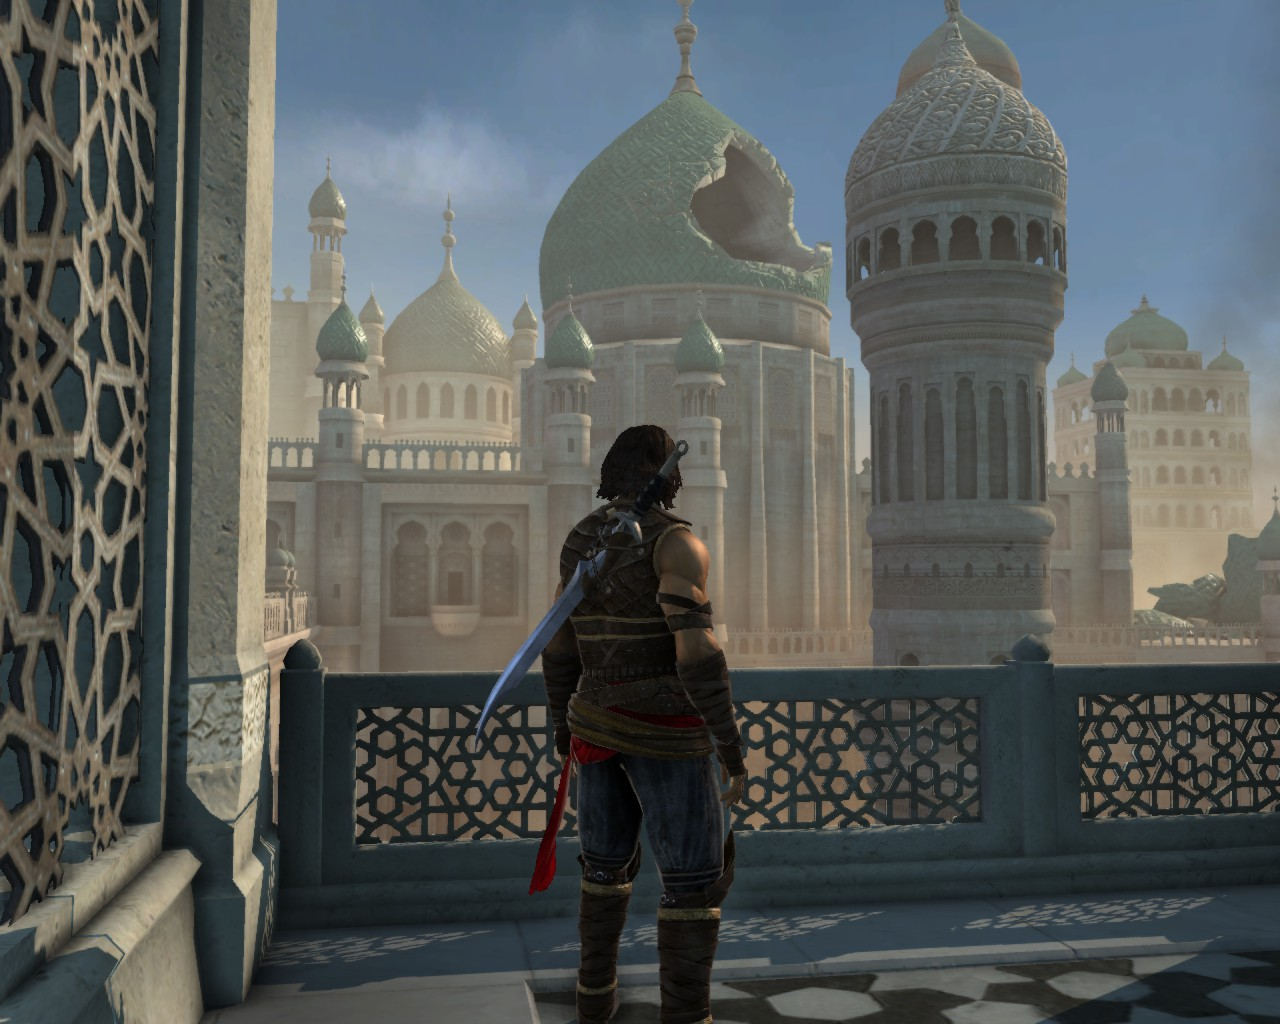 Prince of Persia 2014-06-03 21-33-43-56.jpg - Prince of Persia: The Forgotten Sands